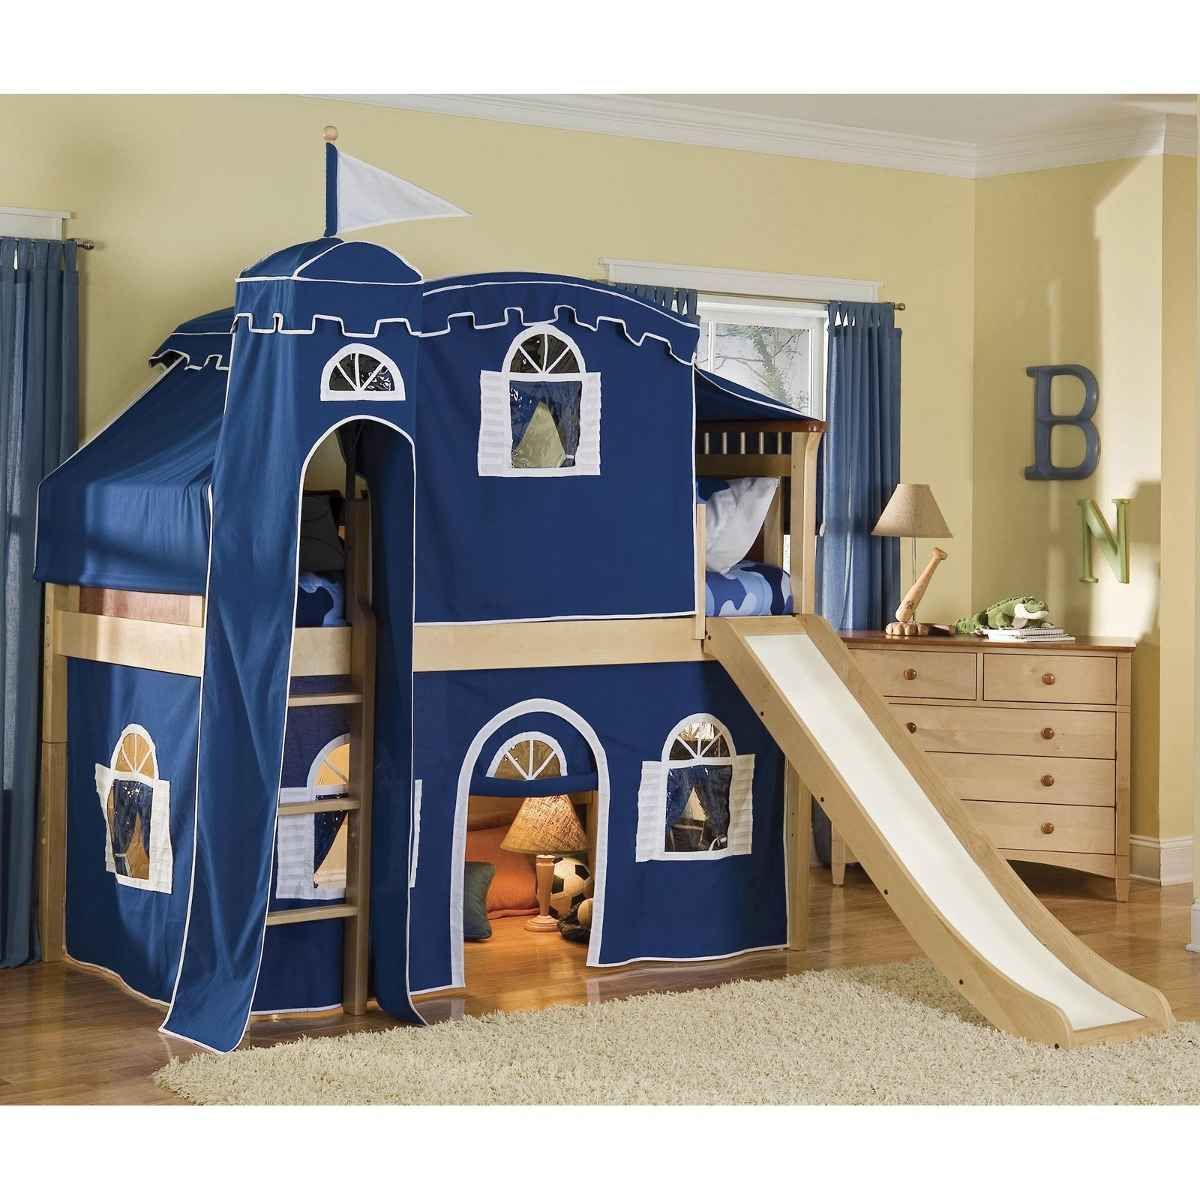 Bunk Bed Tents For Boys Blue Tent Castle Bed For Children Low